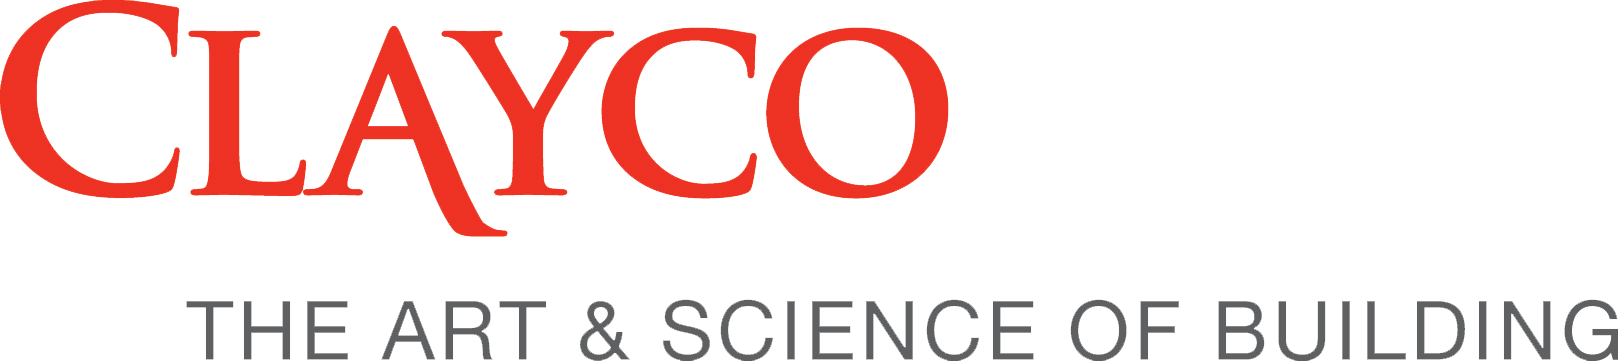 Clayco_Logo_NEW-hi res.png